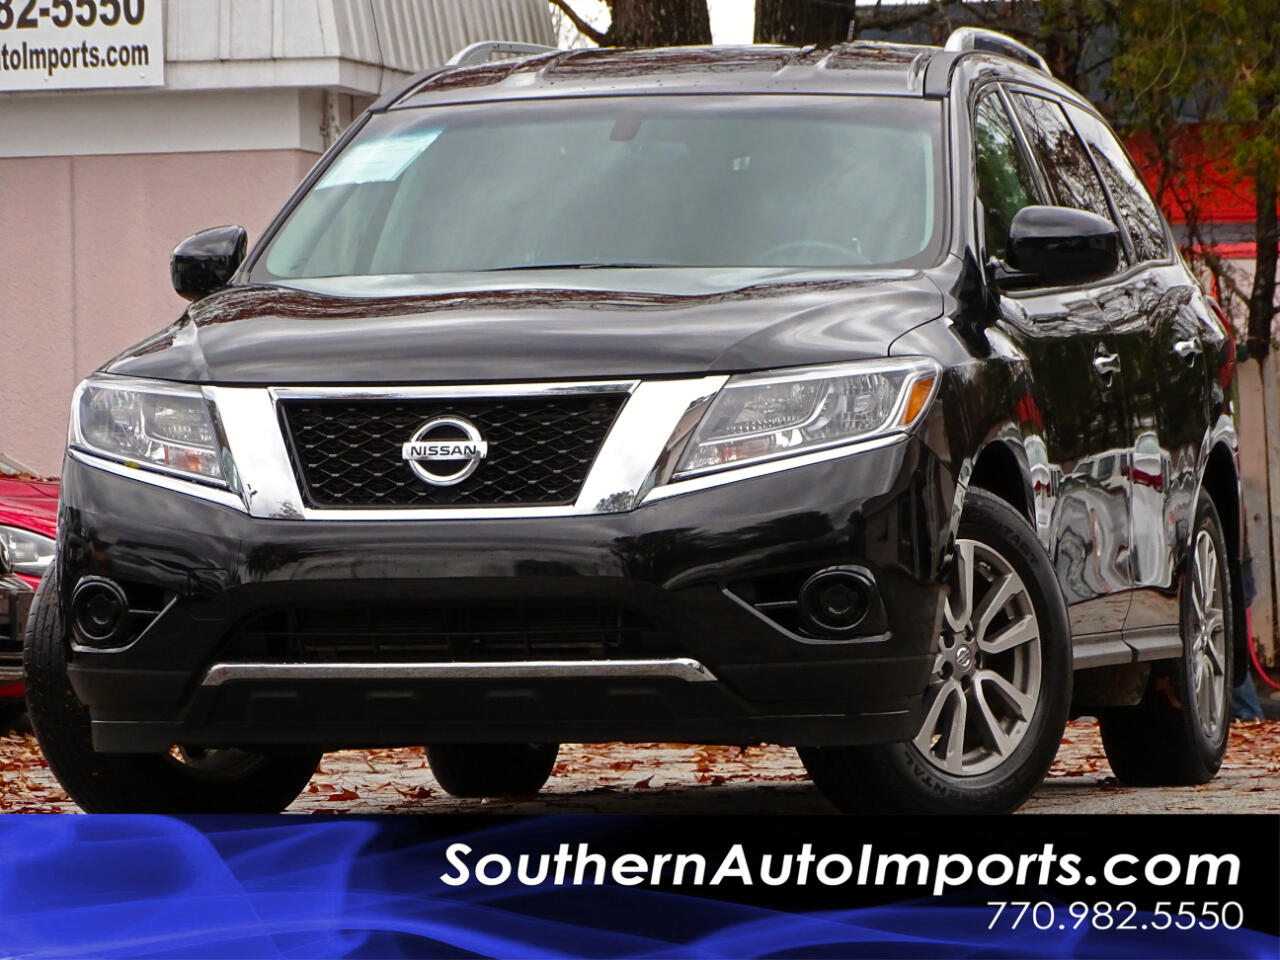 2015 Nissan Pathfinder S 1owner